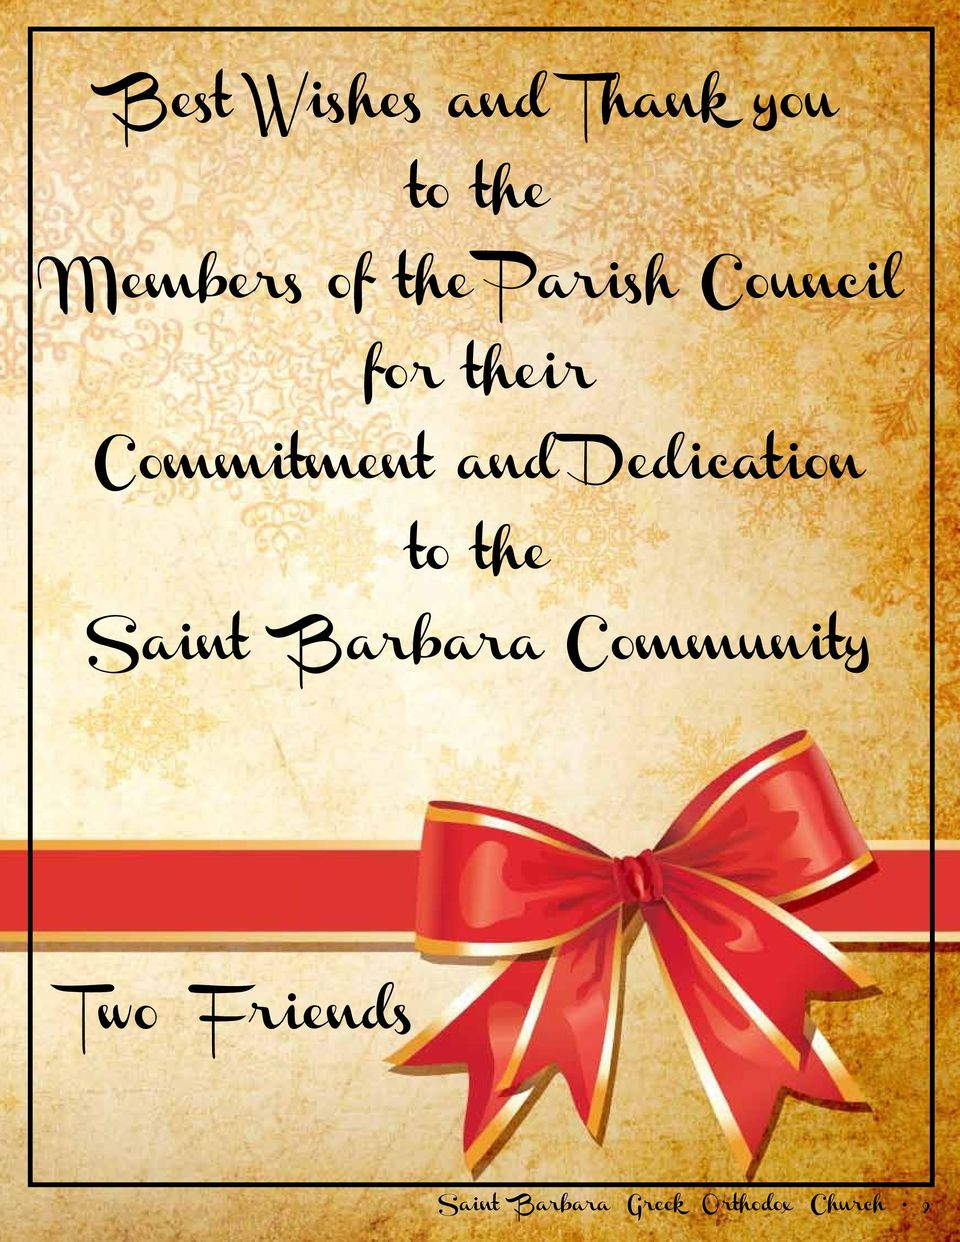 Dedication to the Saint Barbara Community